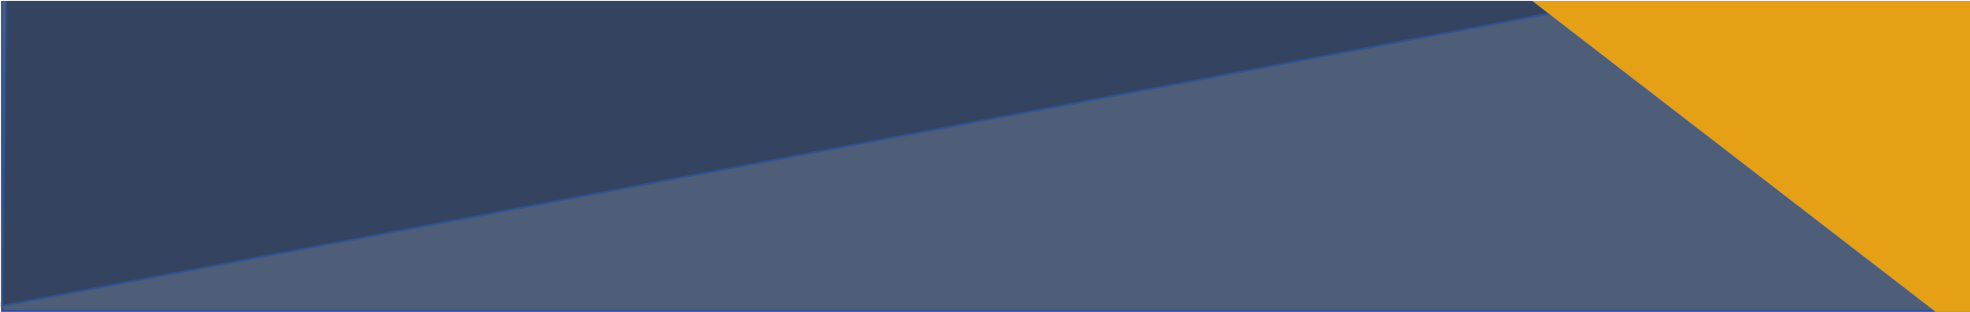 Abstract banner 2-1